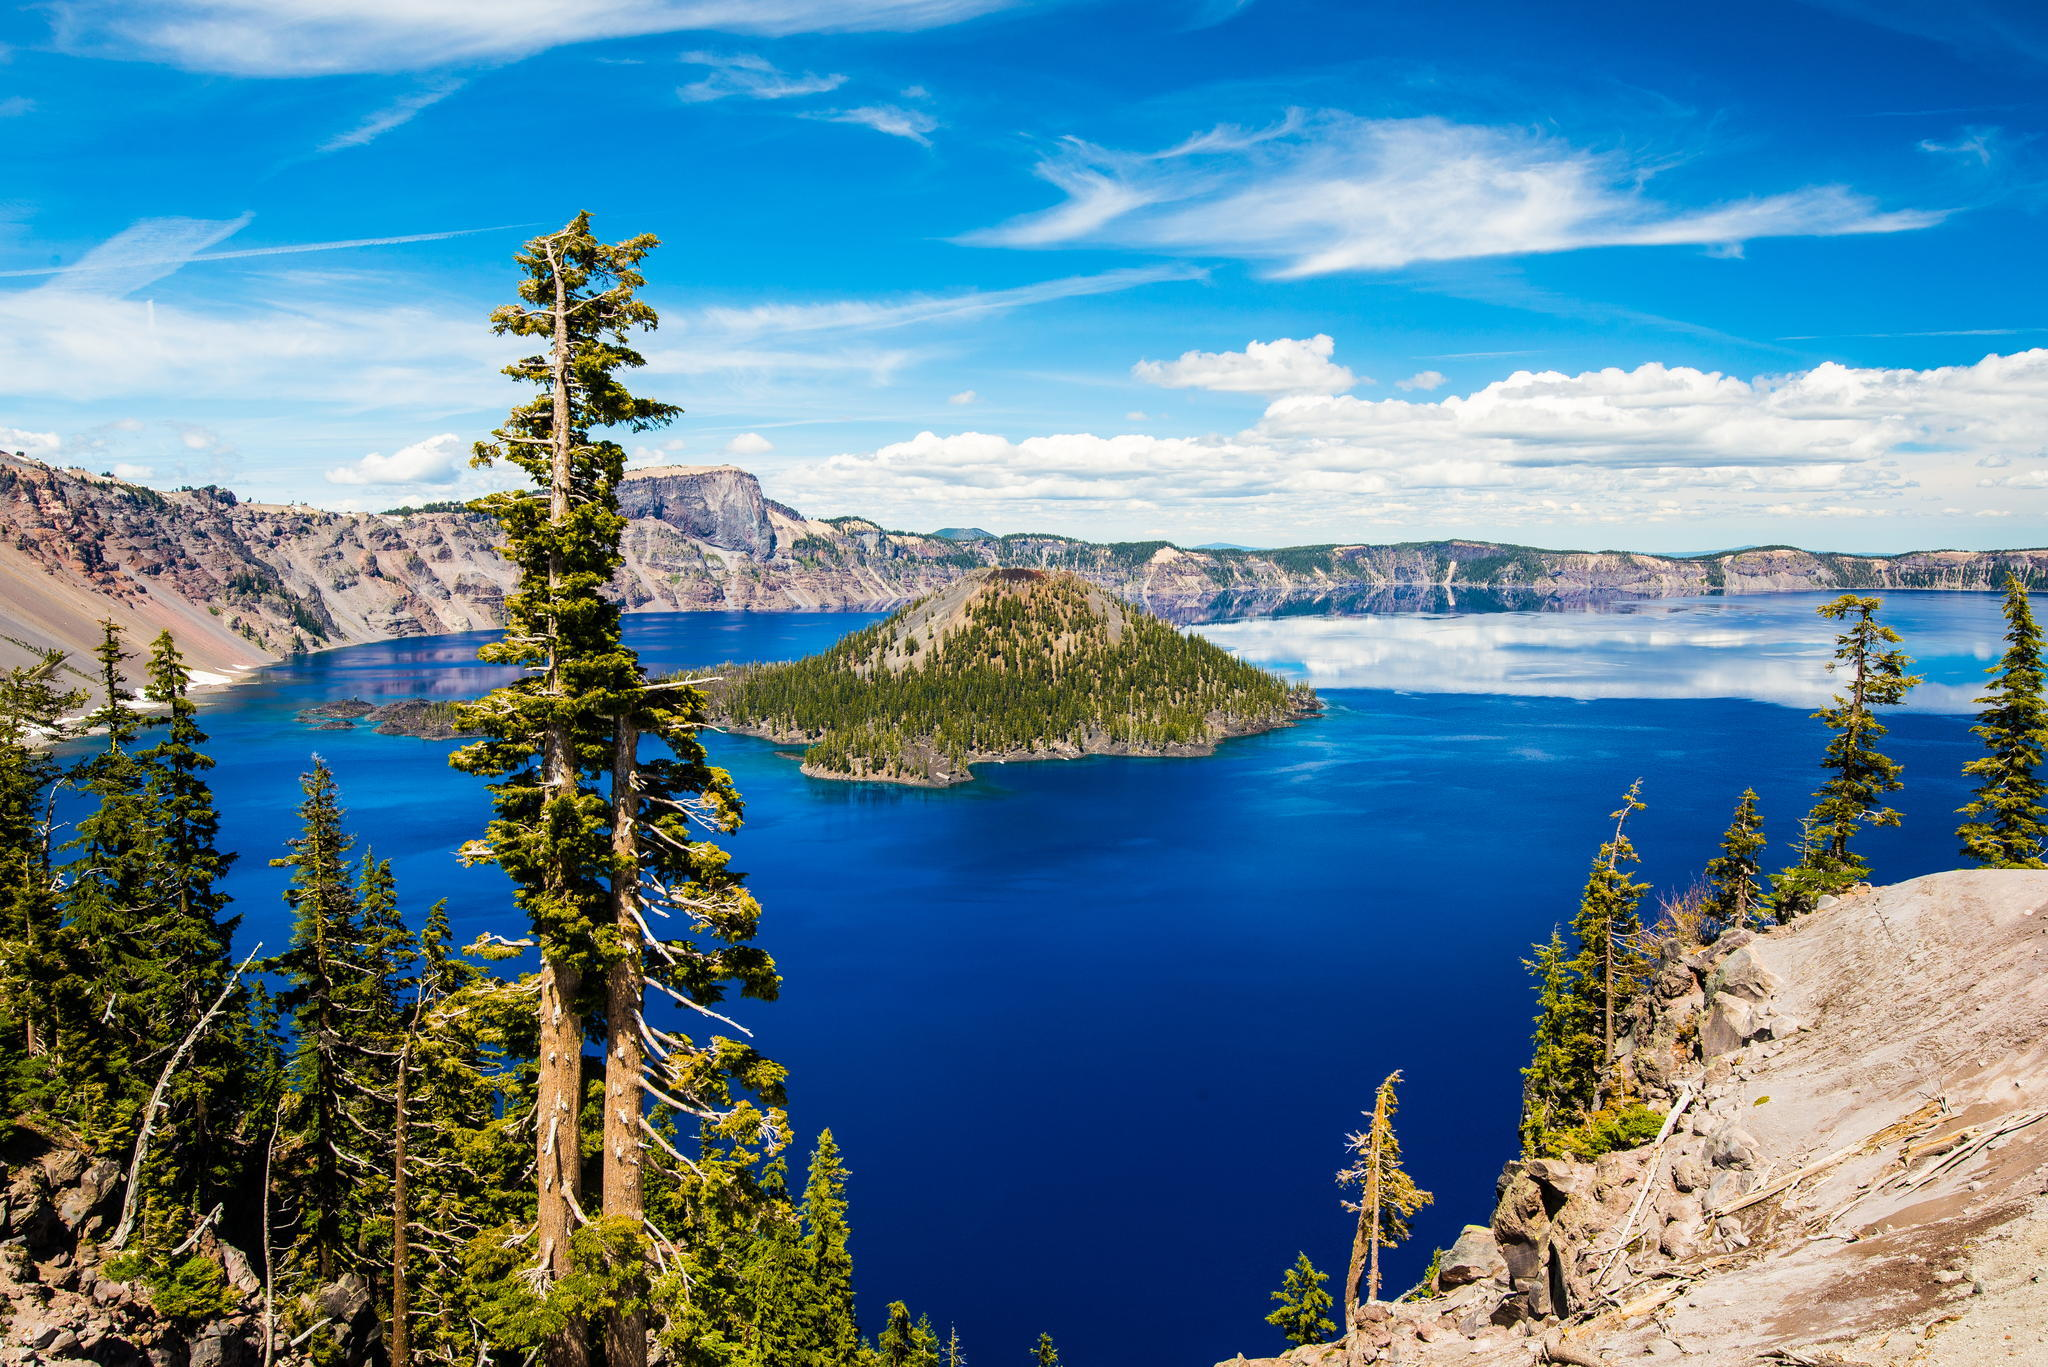 crater lake personals Crater lake inspires awe native americans witnessed its formation 7,700 years ago, when a violent eruption triggered the collapse of a tall peak scientists marvel at its purity: fed by rain and snow, it's the deepest lake in the usa and perhaps the most pristine on earth artists, photographers.